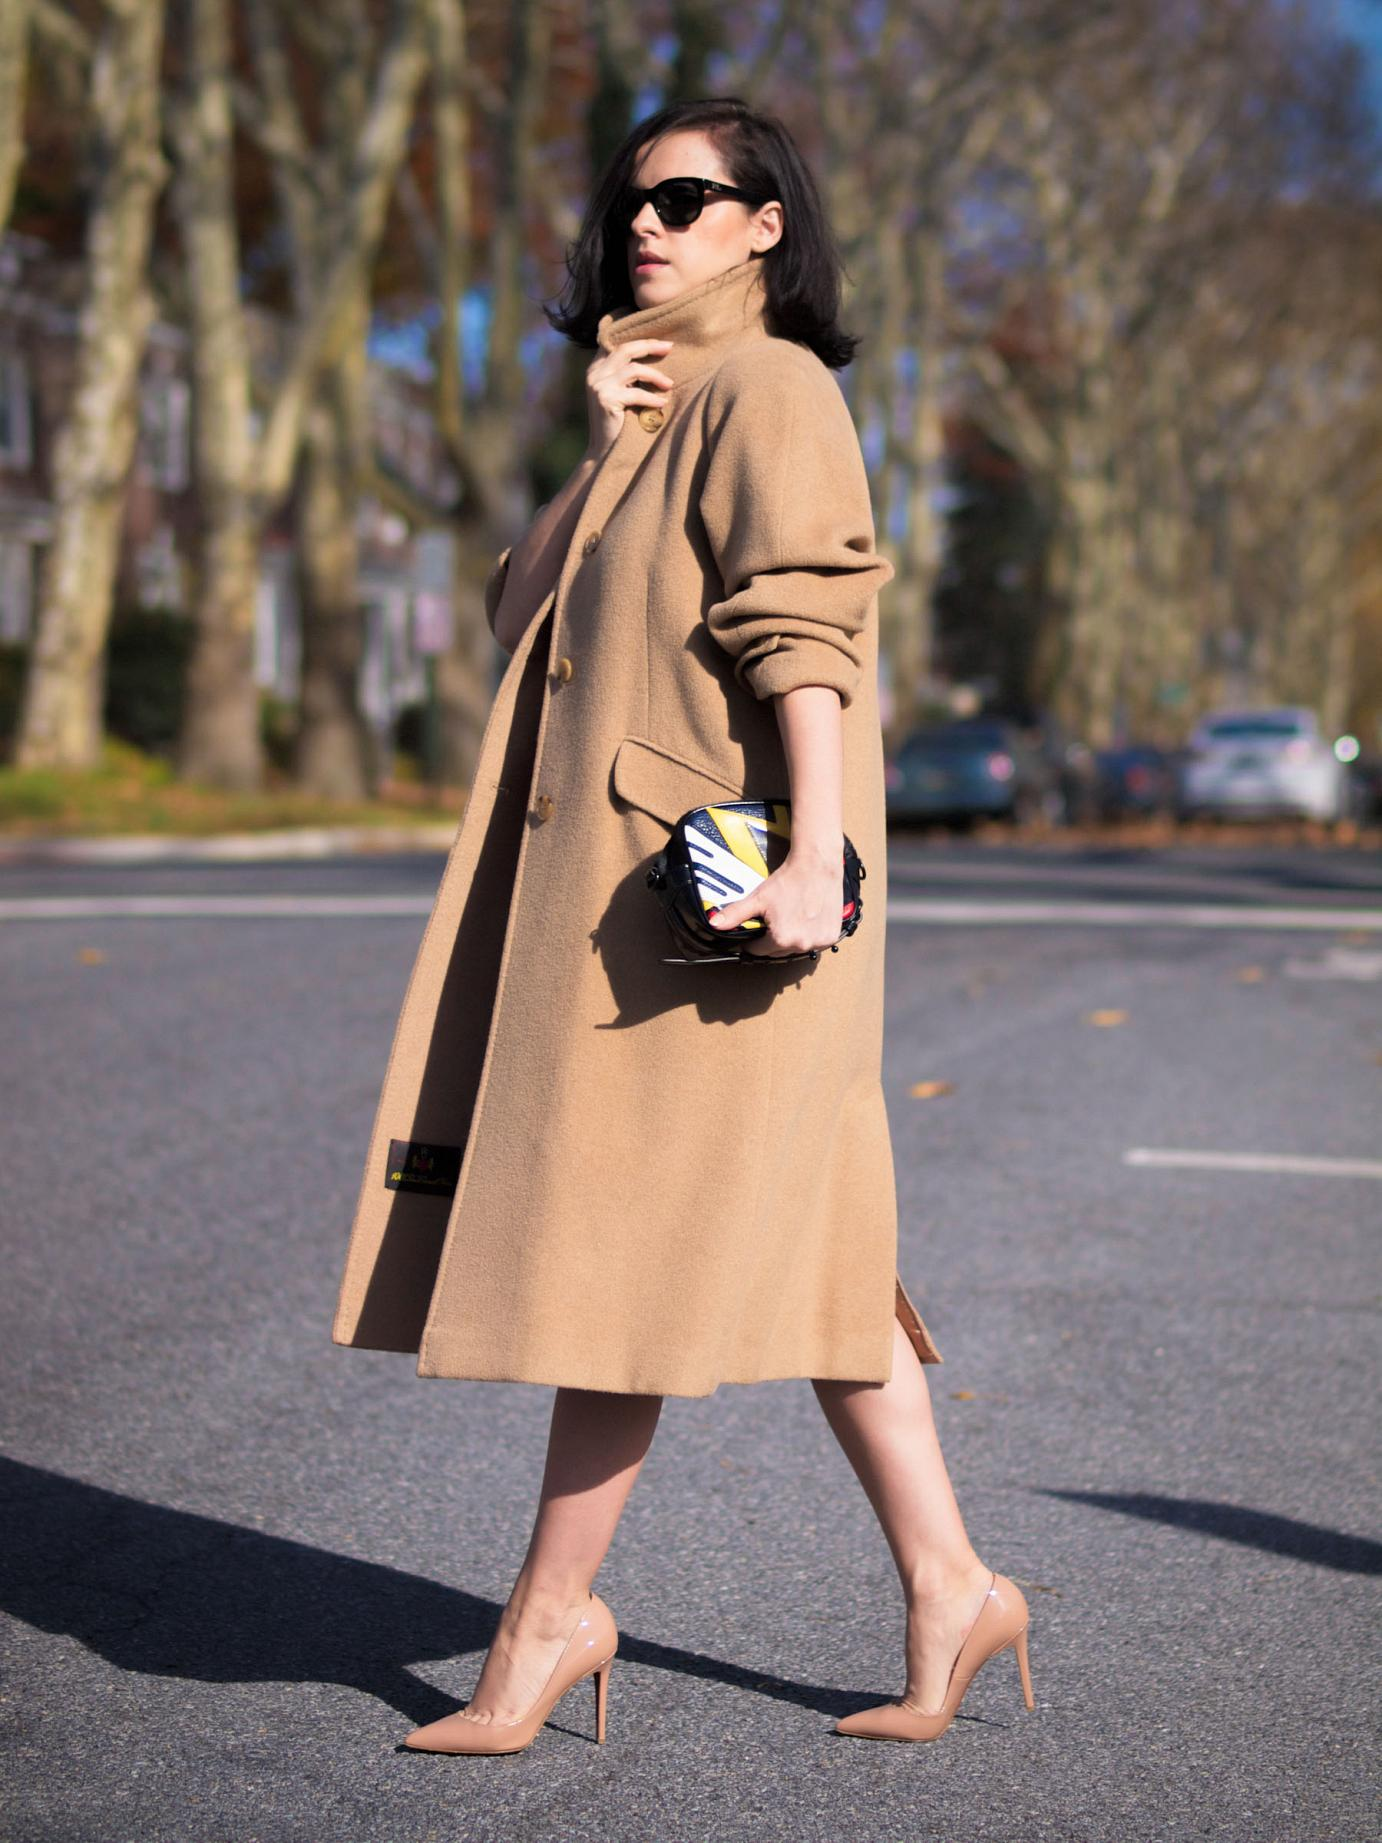 bittersweet colours, fall, fall coats, fall colors, fall street style, christian louboutin shoes, vintage dress, vintage coat, red dress, camel coat, cashmere coat, 3.1 phillip lim bag, maternity style, bumb style, 21 weeks,